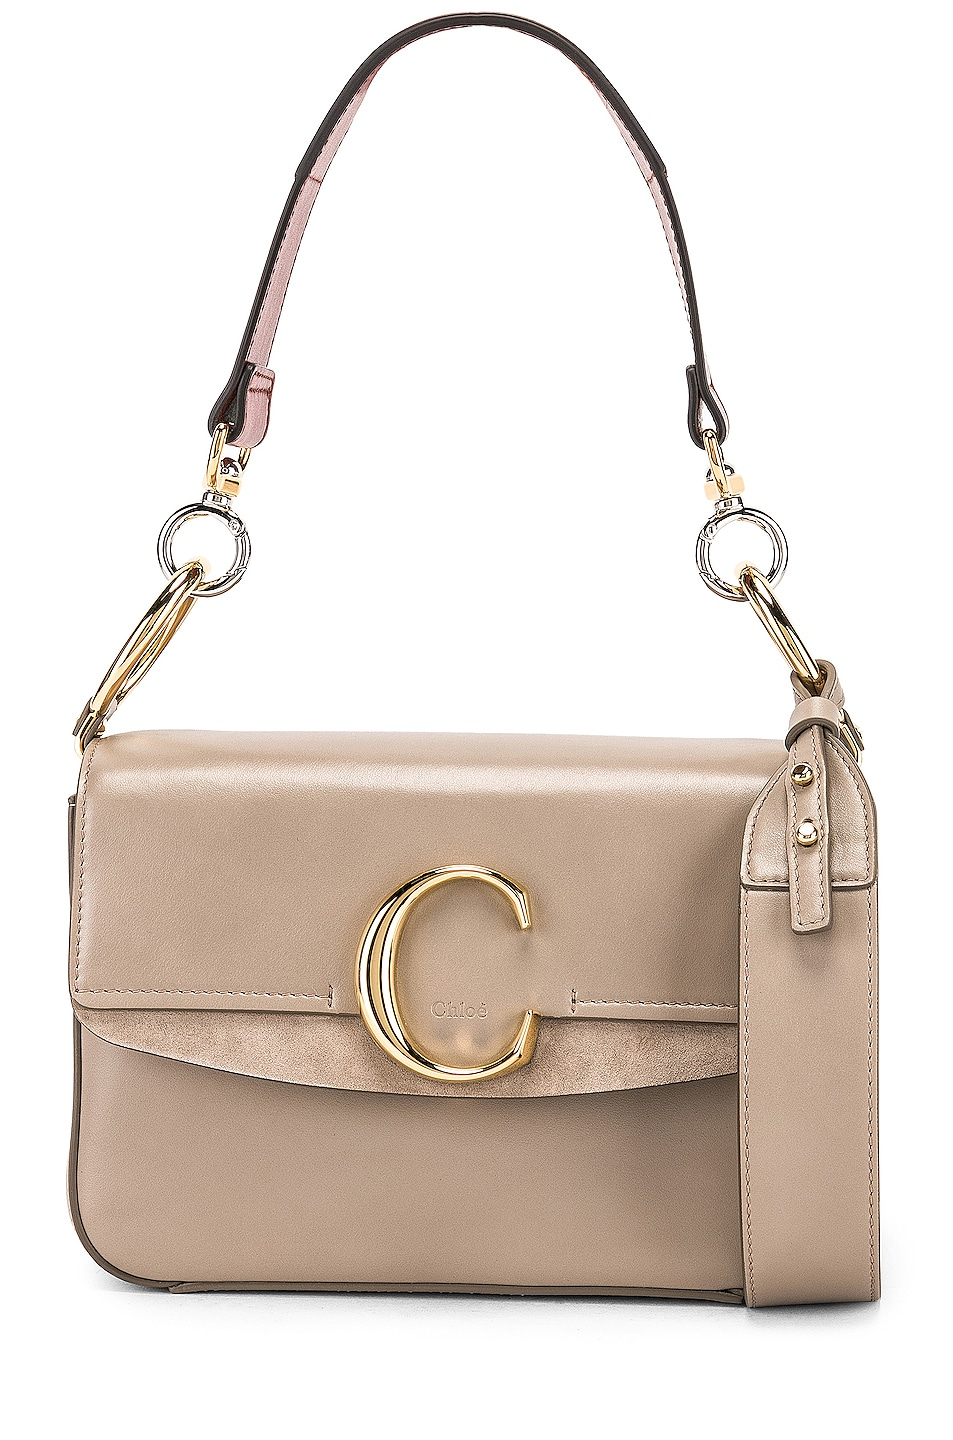 Image 1 of Chloe Small Chloe C Double Carry Bag in Motty Grey